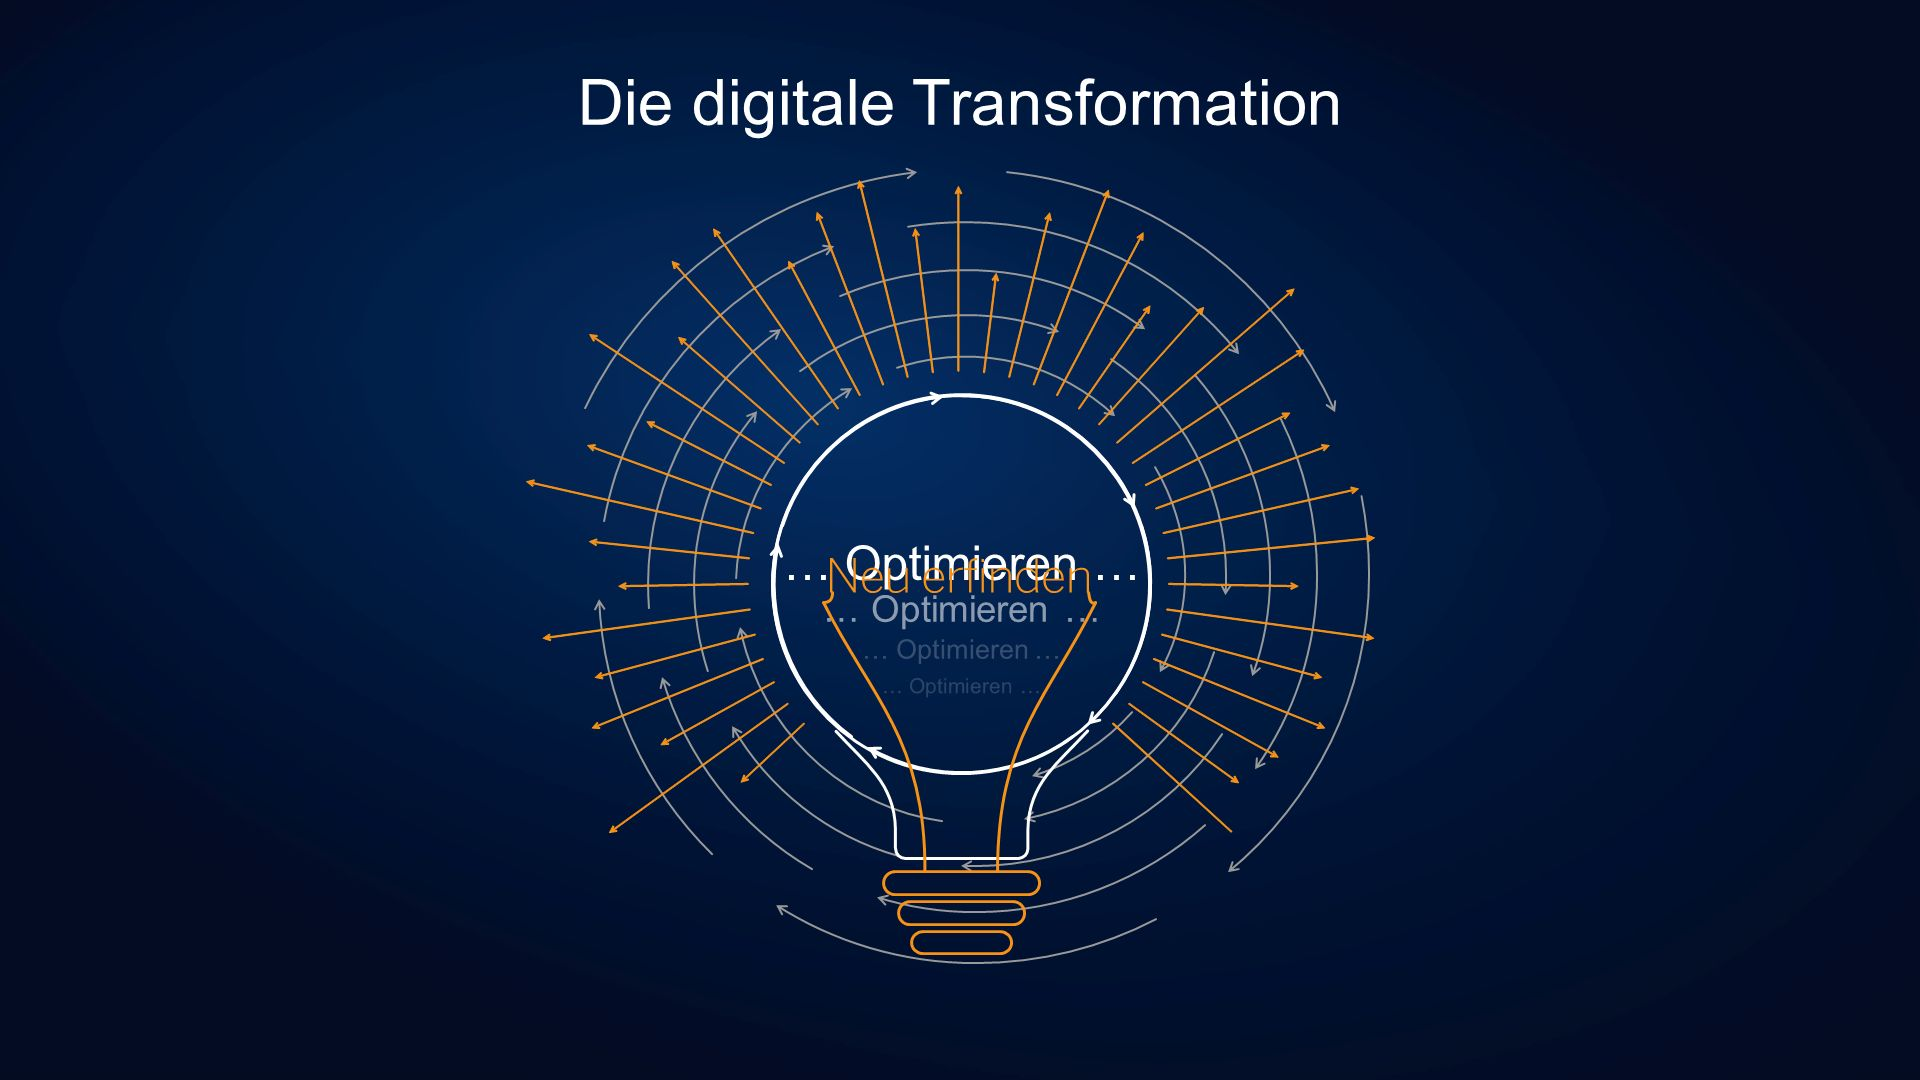 Die digitale Transformation